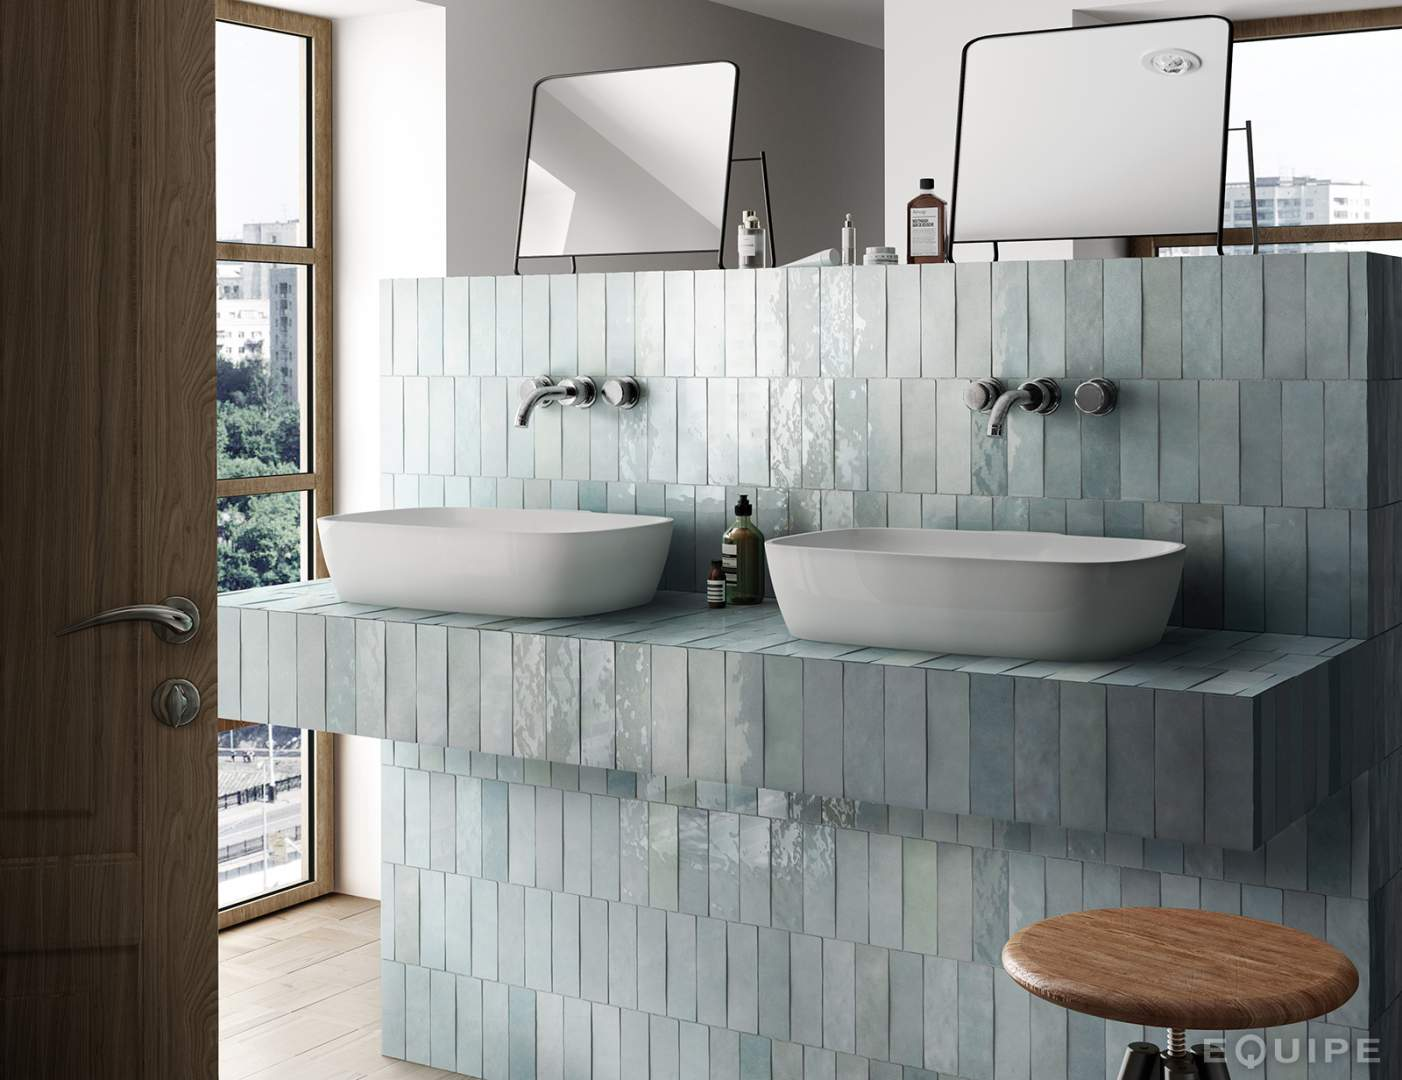 Artisan Metro Tiles Dublin Ireland Stone Bathroom